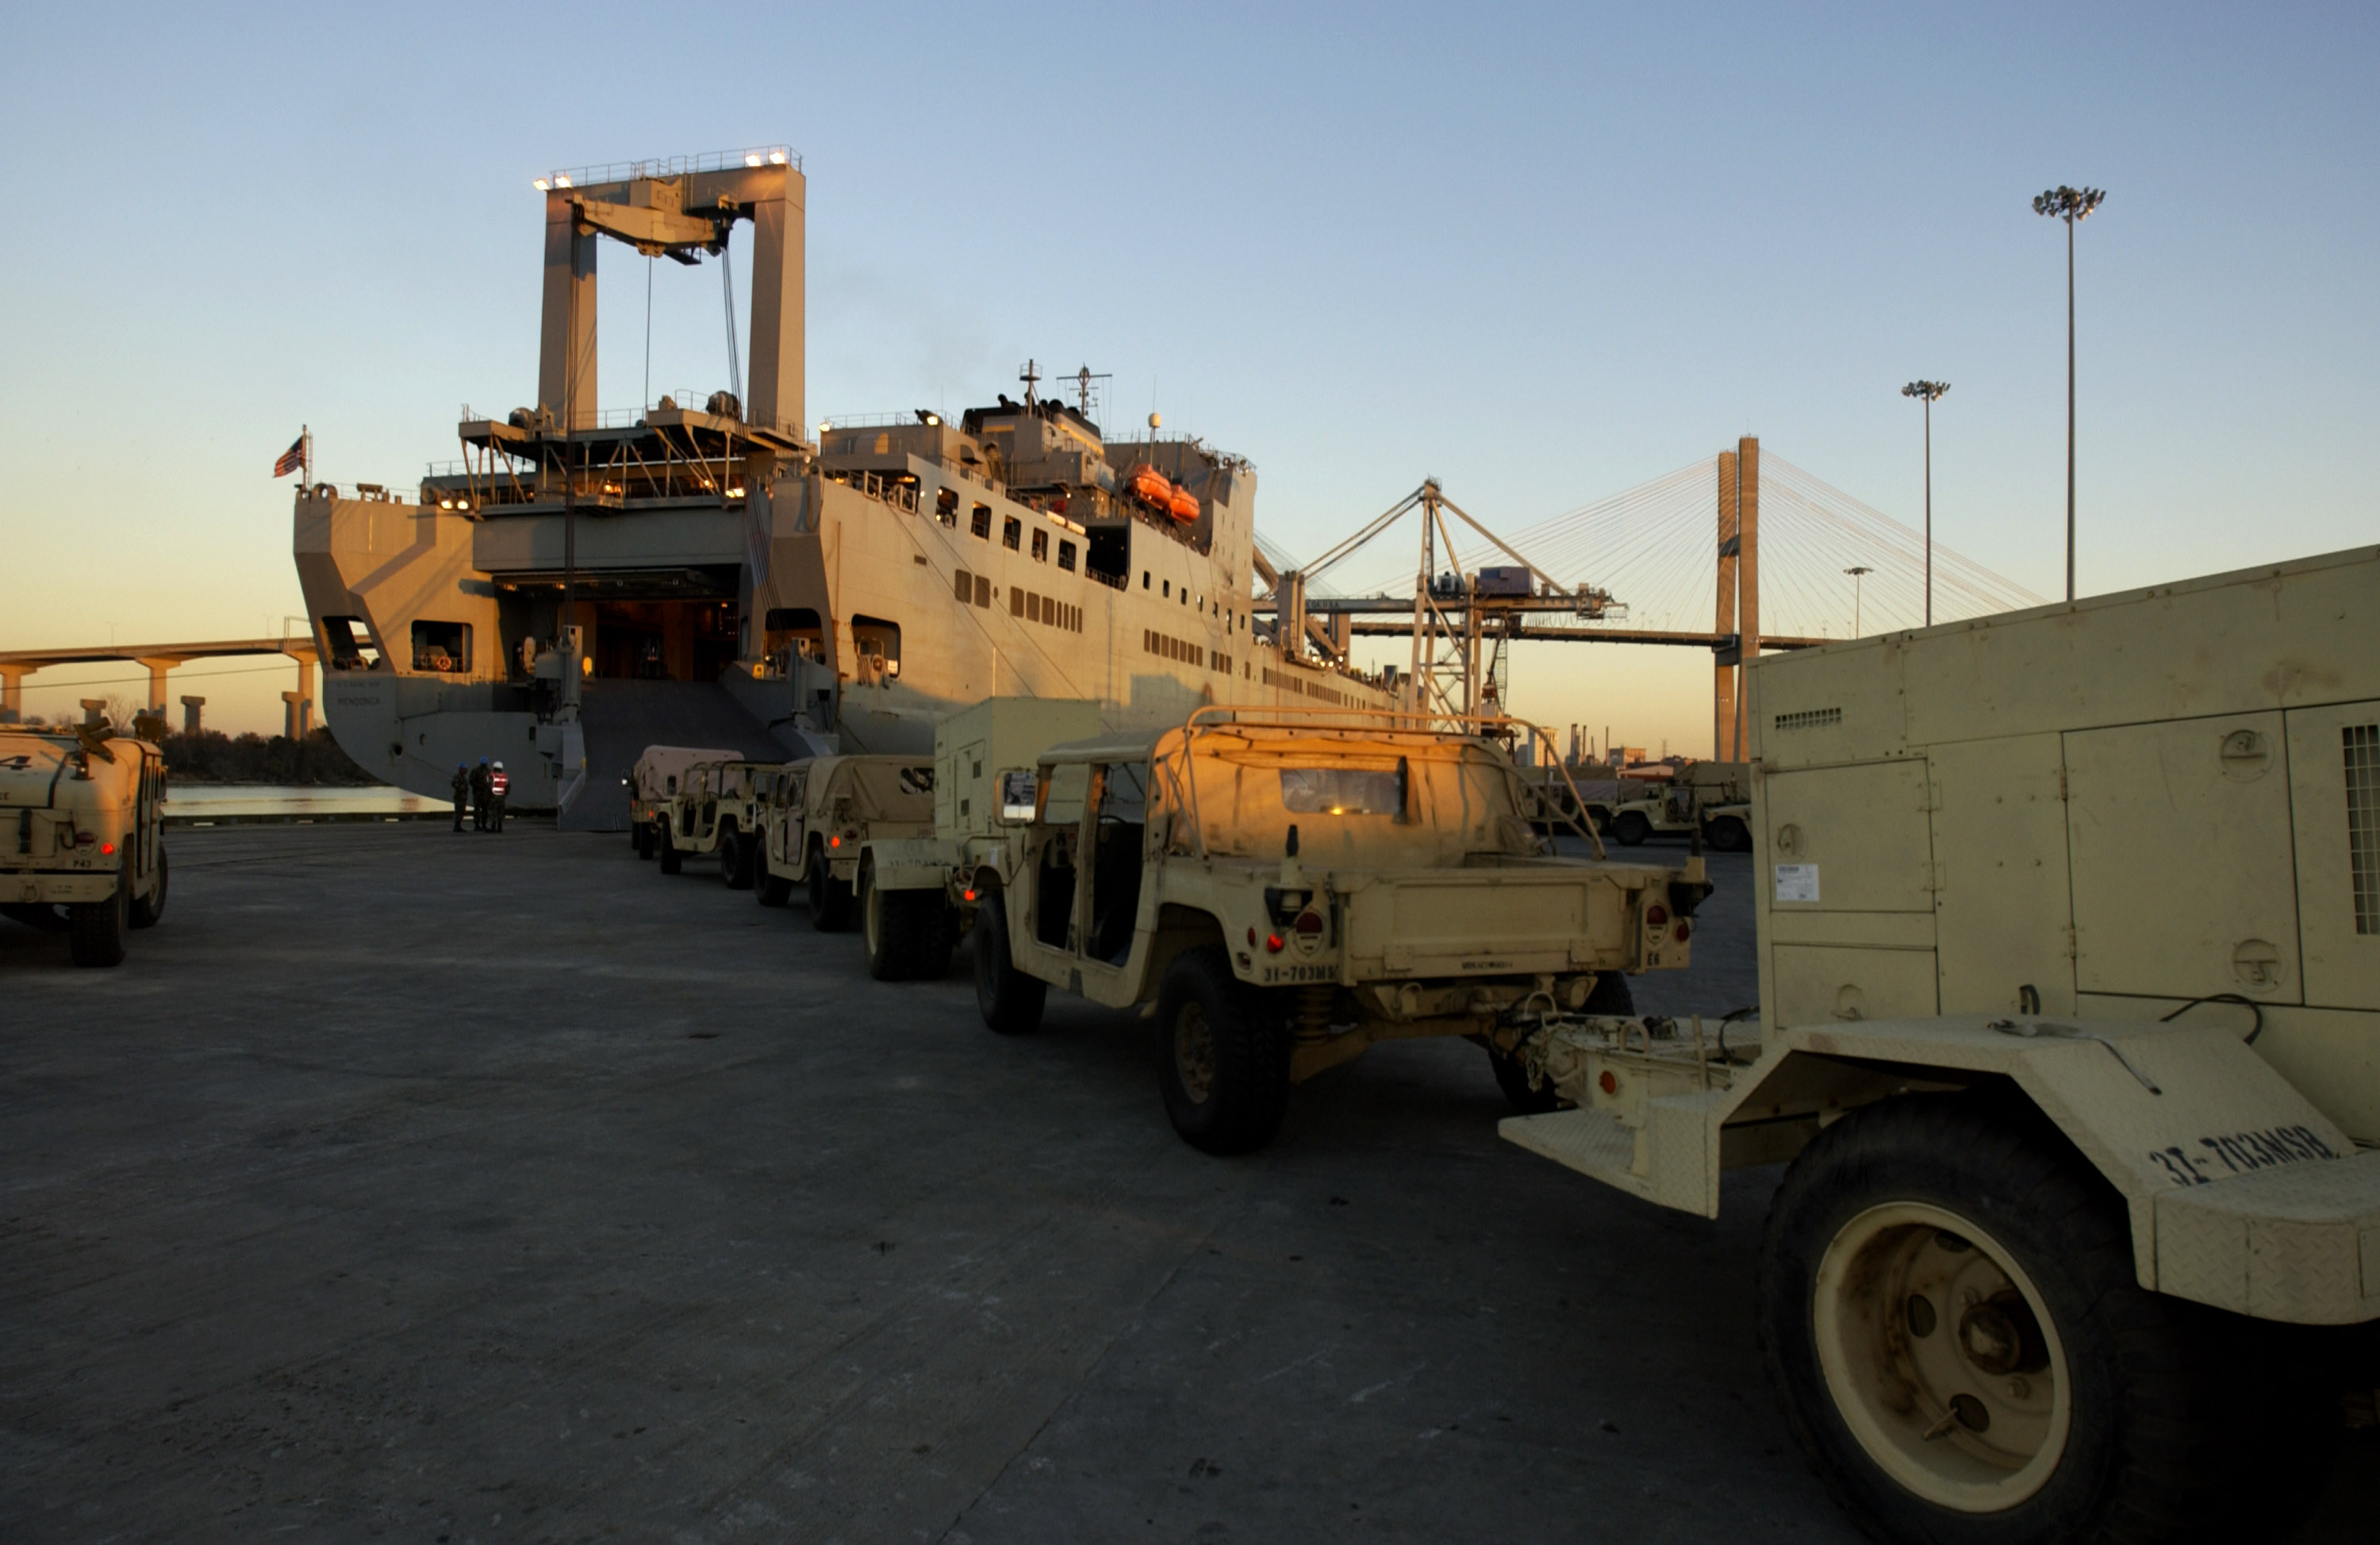 A line of U.S. Army Humvees waits on a dock at the Port of Savannah, Ga., in 2003. The USNS Mendonca was being loaded with military hardware bound for the Arabian Gulf. The Army uses sealift to transport 90 percent of its gear. (Stephen Morton/Getty Images)